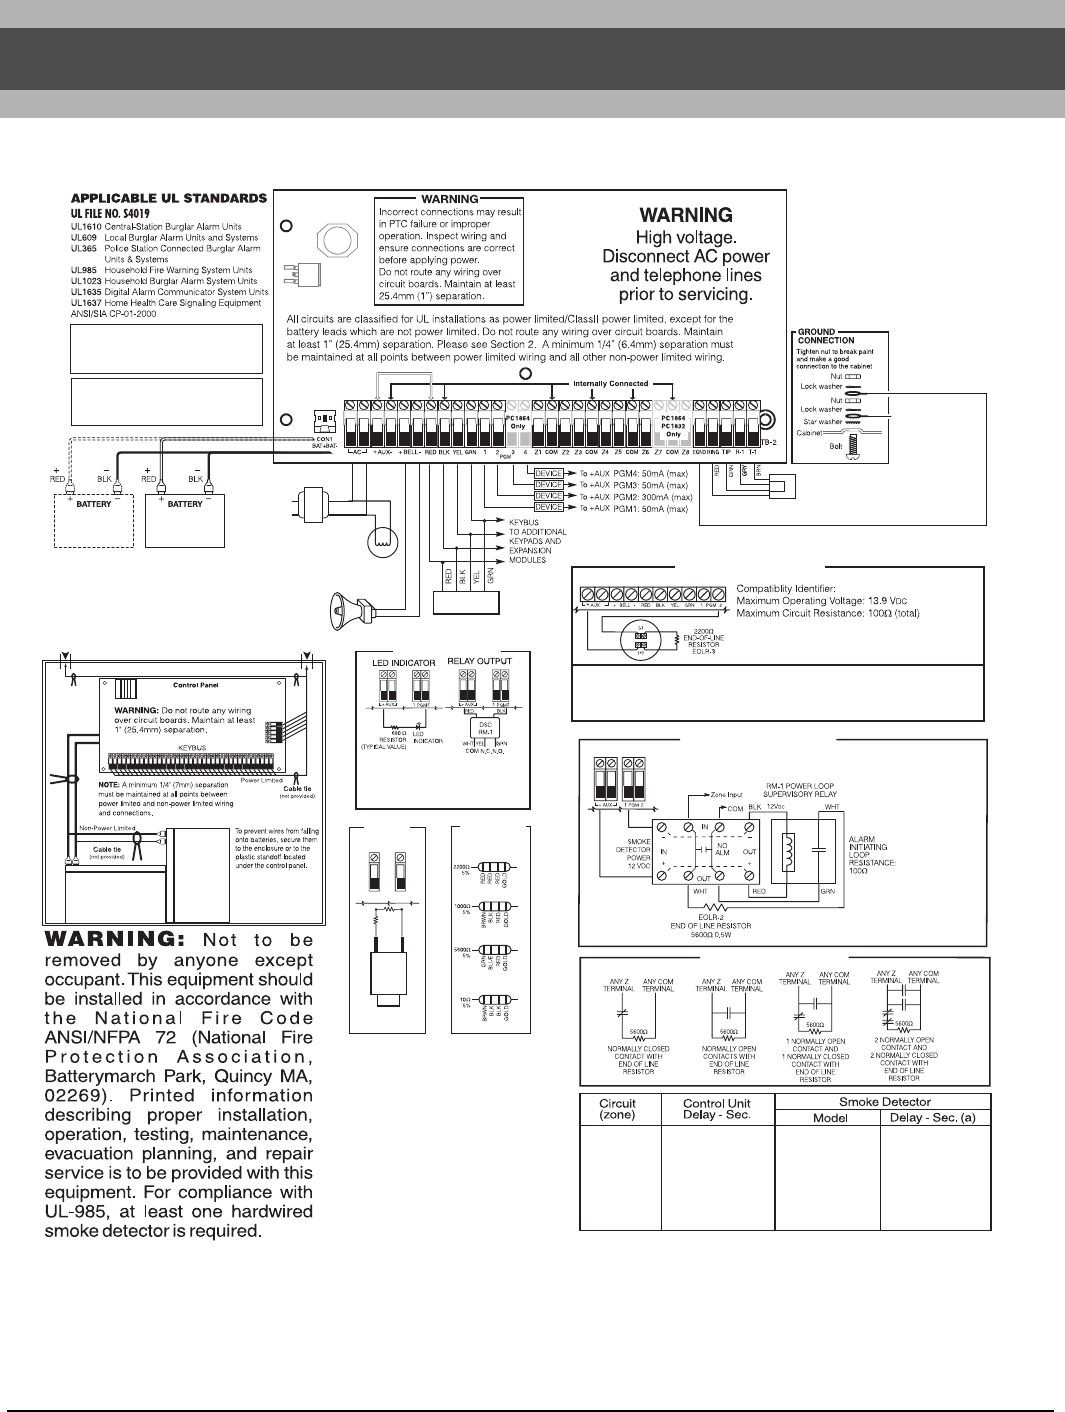 home network wiring diagrams home image wiring diagram wiring diagrams of a home network wiring wiring diagram collections on home network wiring diagrams